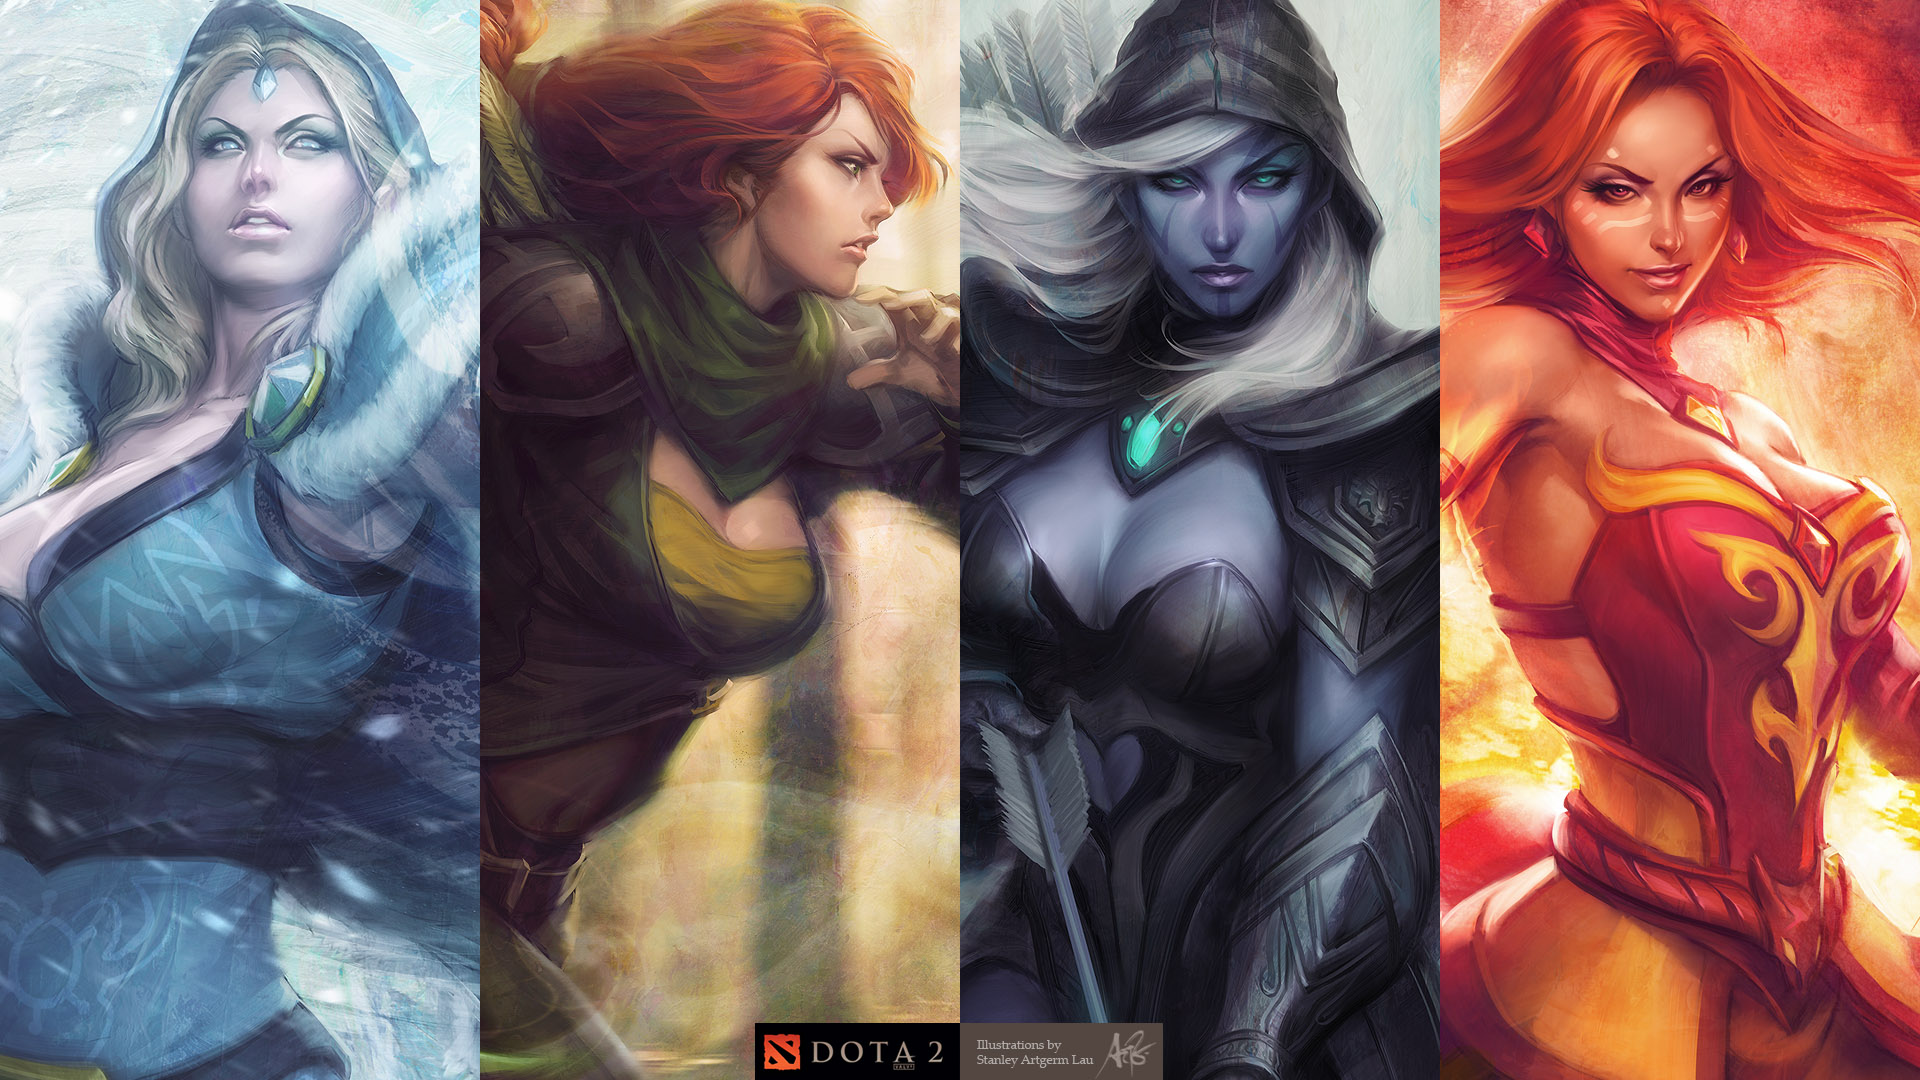 Lina,Crystal Maiden,Traxex,Windrunner wallpapers dota 2 Скачать 4 Set